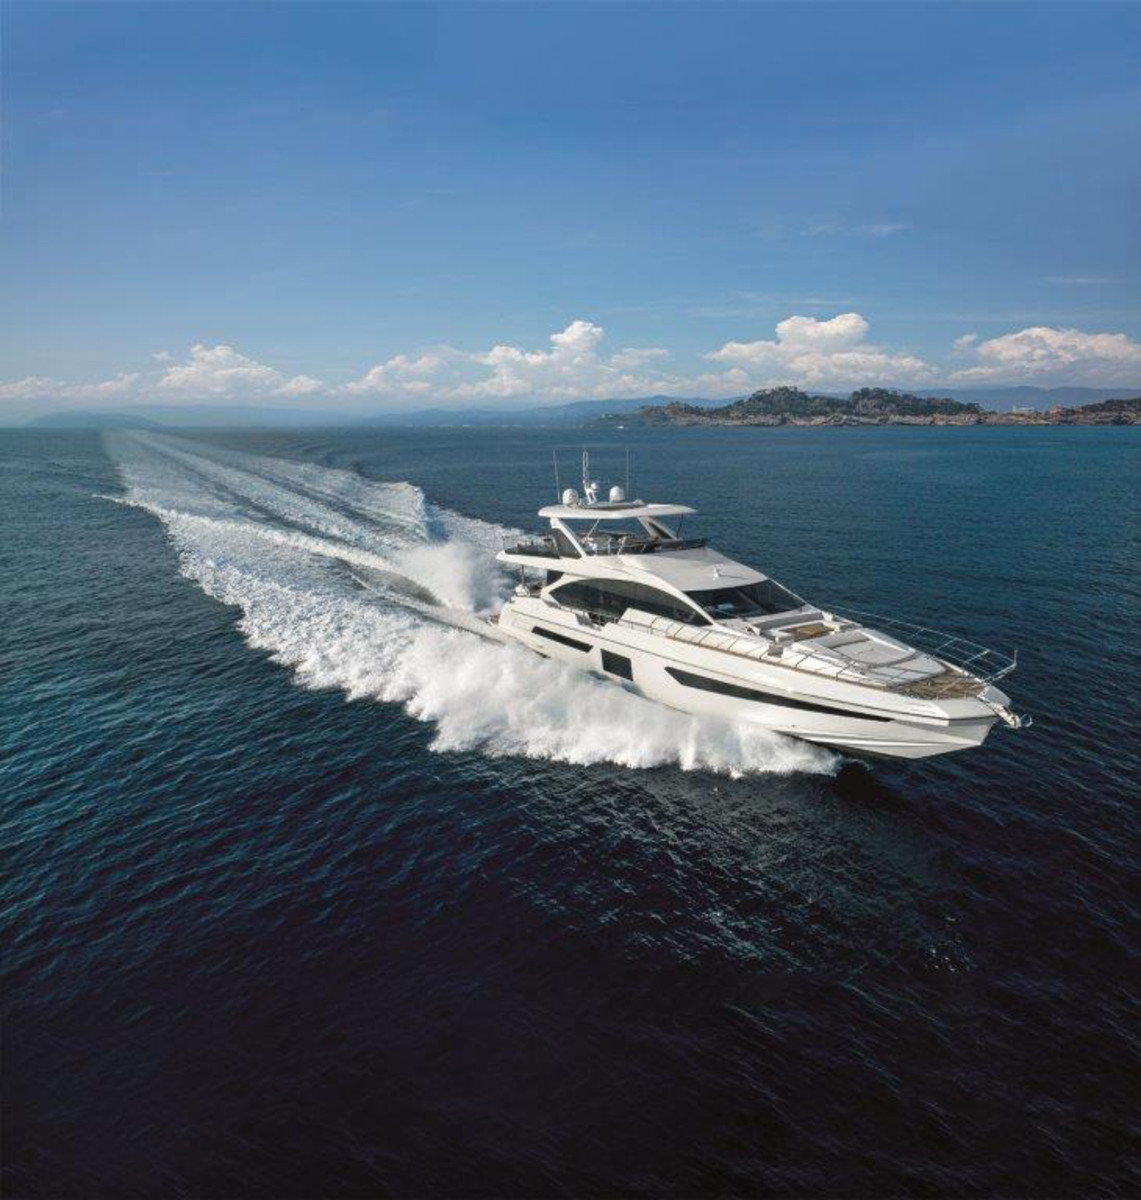 Launched at FLIBS, Azimut's 82-ft. Metri 25 is an example of how U.S. buyers are choosing larger motoryachts.